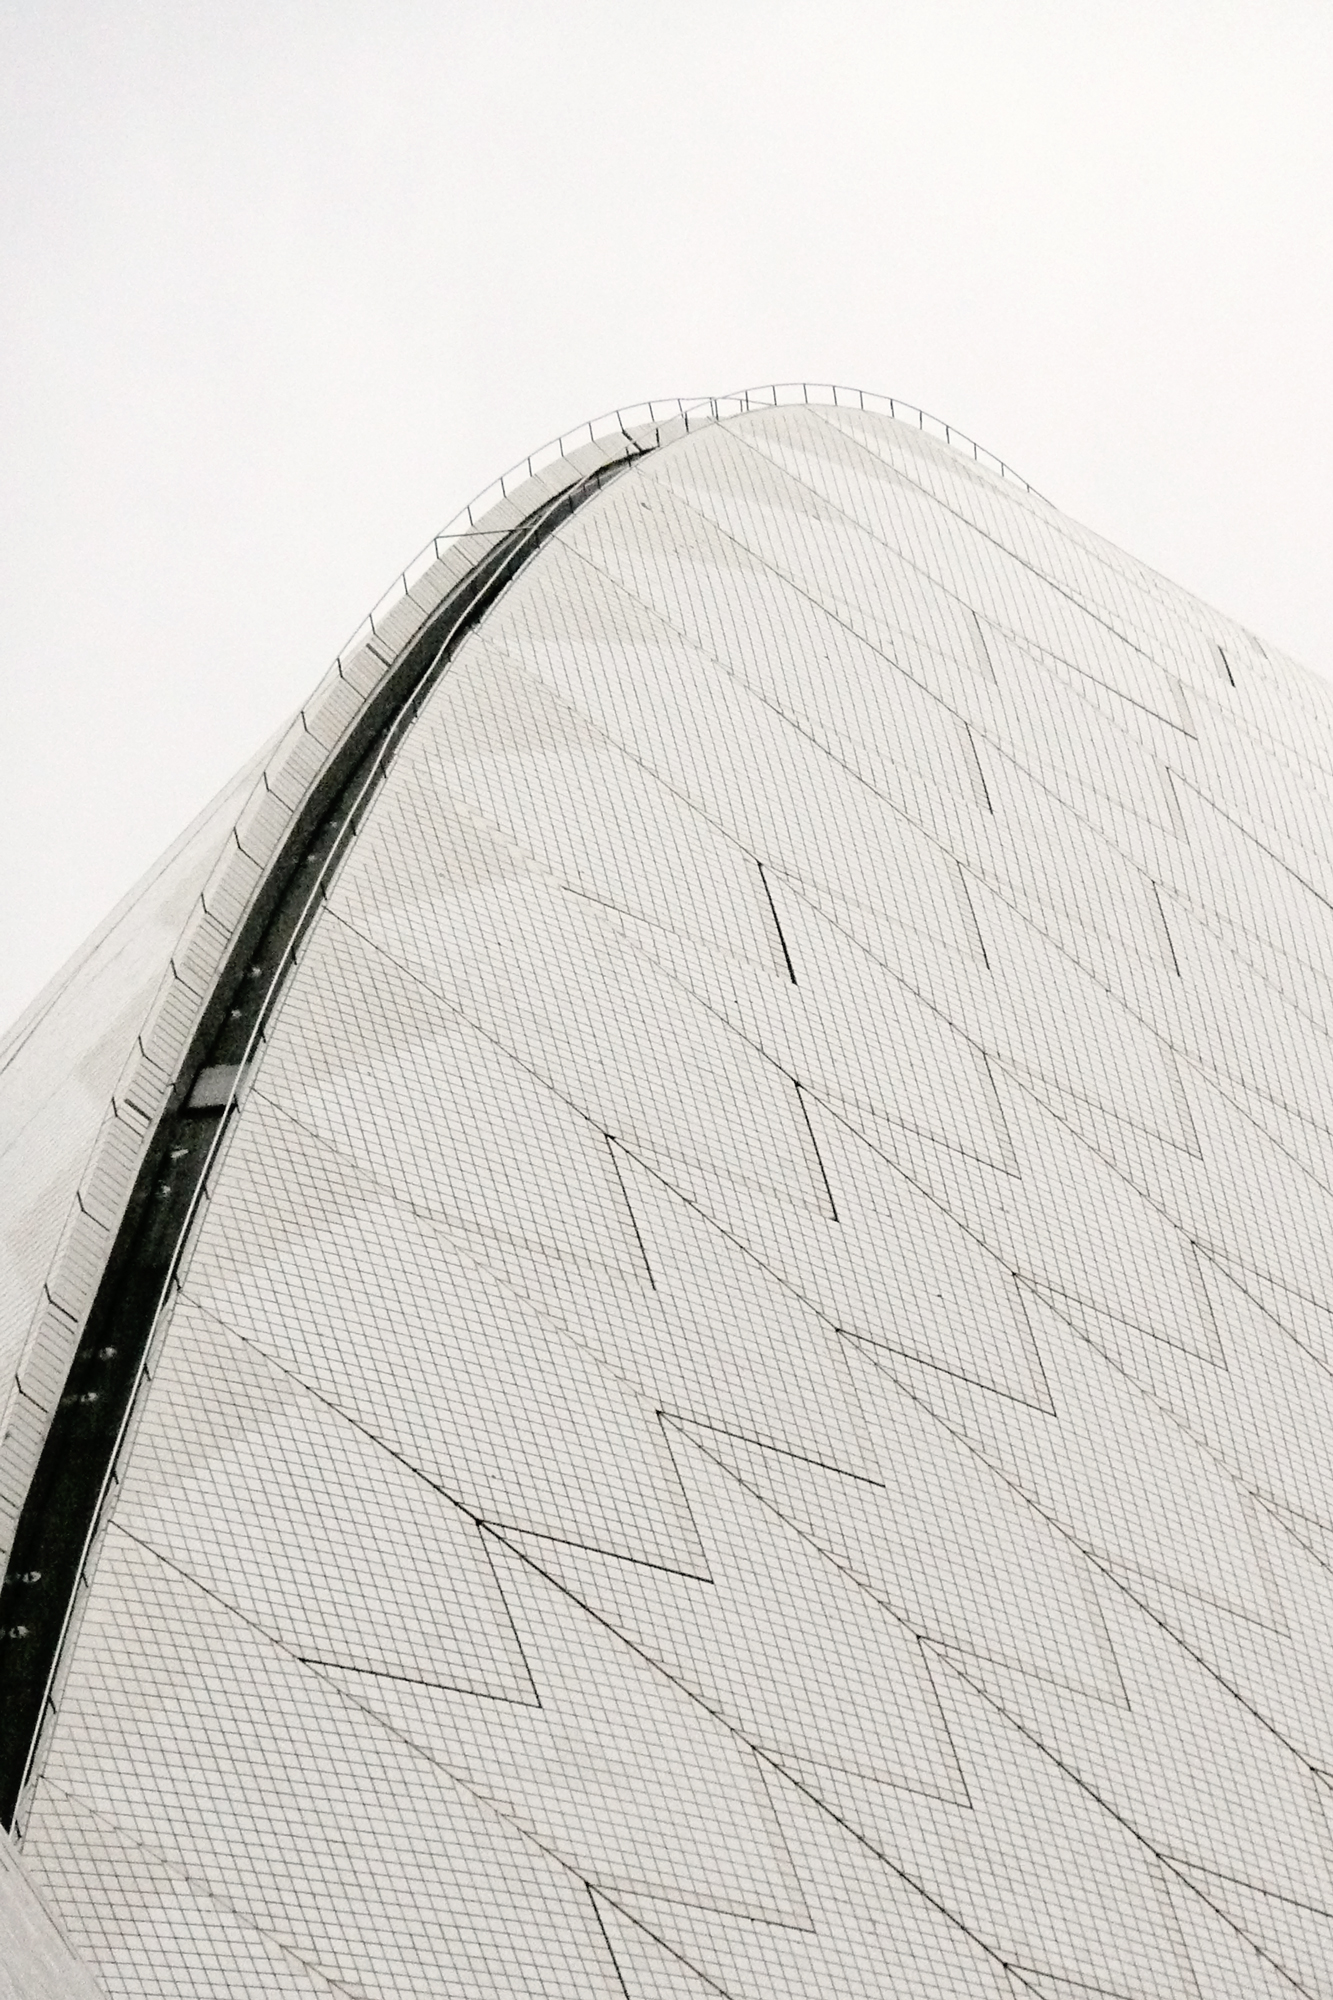 Opera House Abstract